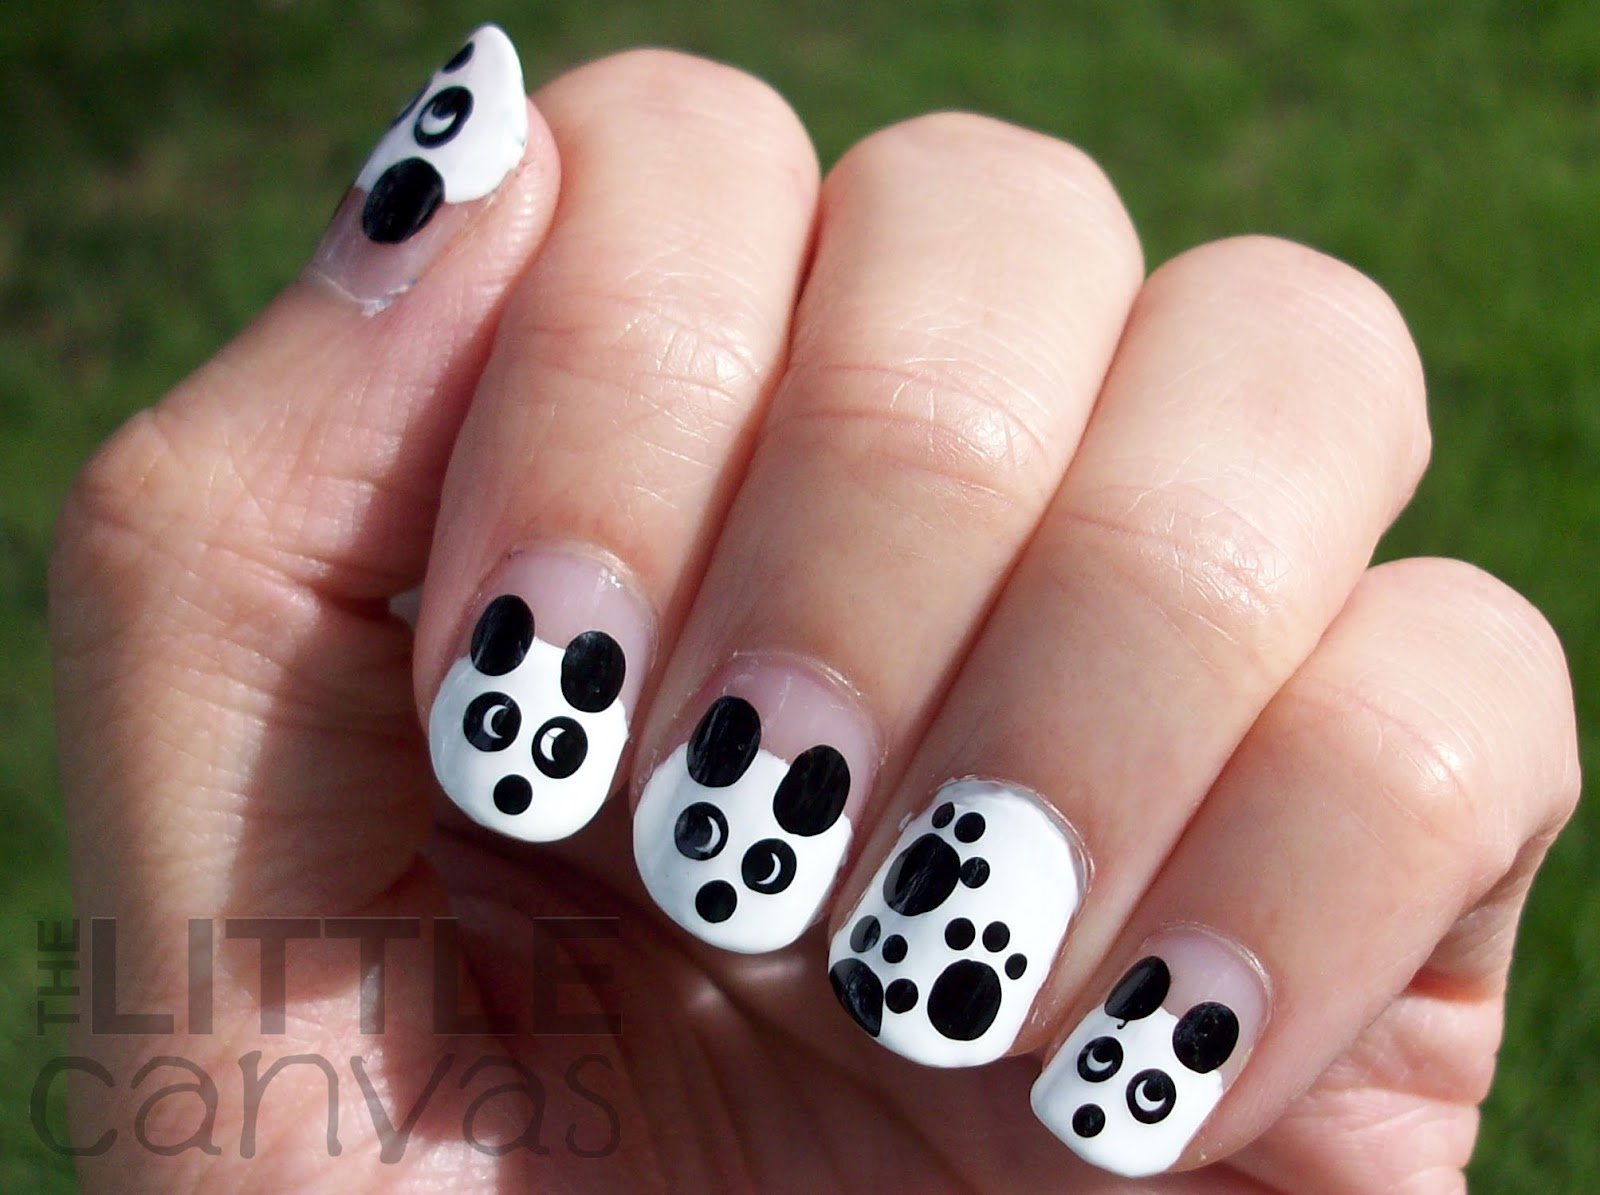 31 Day Challenge - Day 8 - Black and White - Pandas! - The Little Canvas